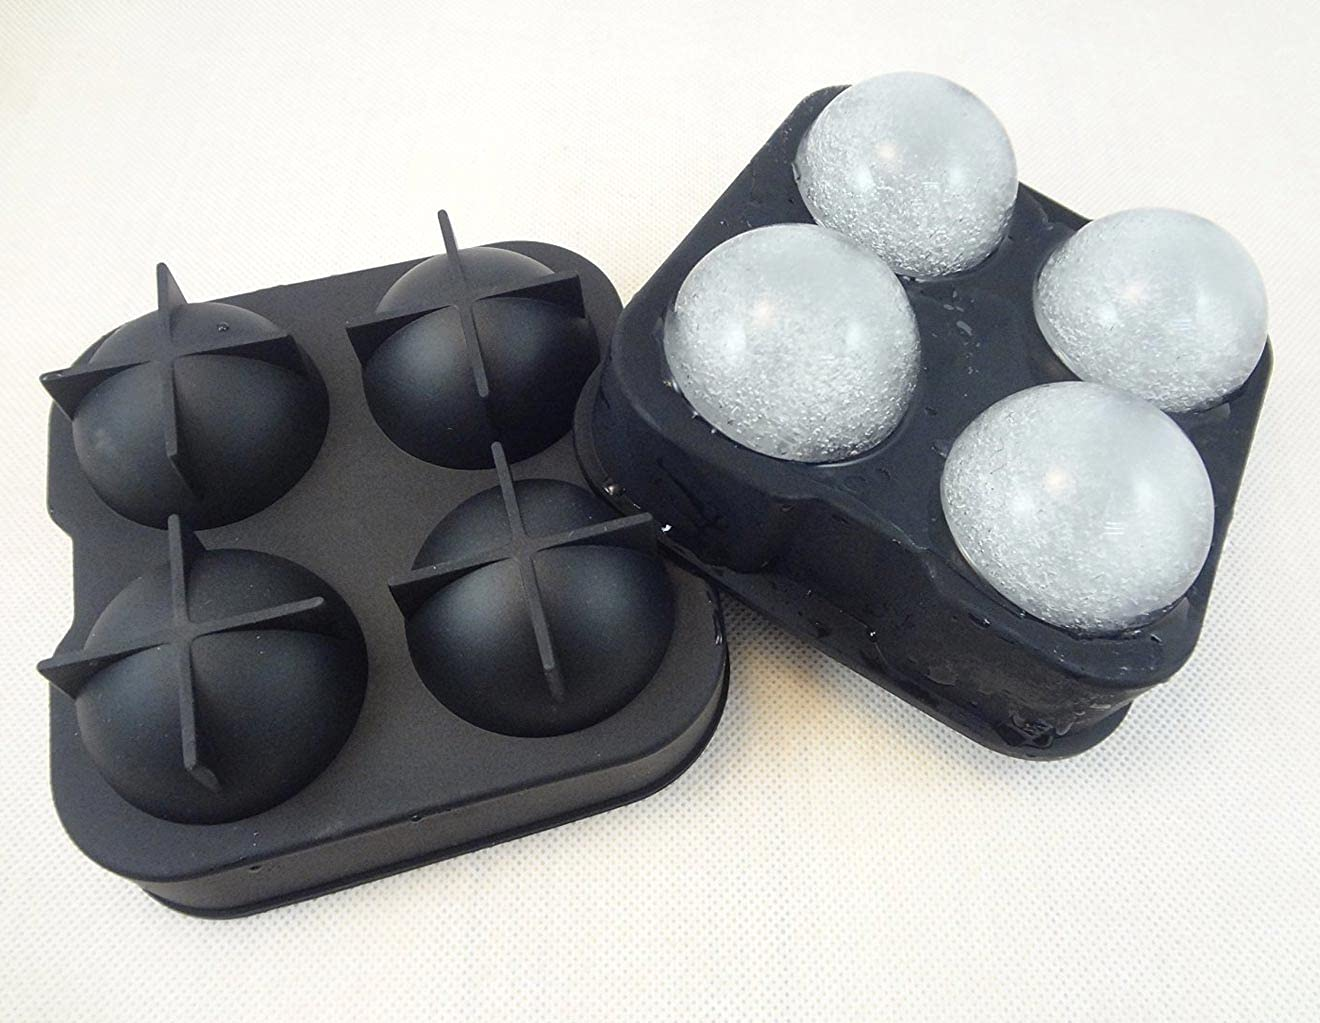 Sampton ice Trays for Freezer Whiskey Ice Cube Silicone Ball Maker Mold Sphere Mould 4 Holes New Ice Balls Party Brick Round Tray Bar Tool ice for Whiskey